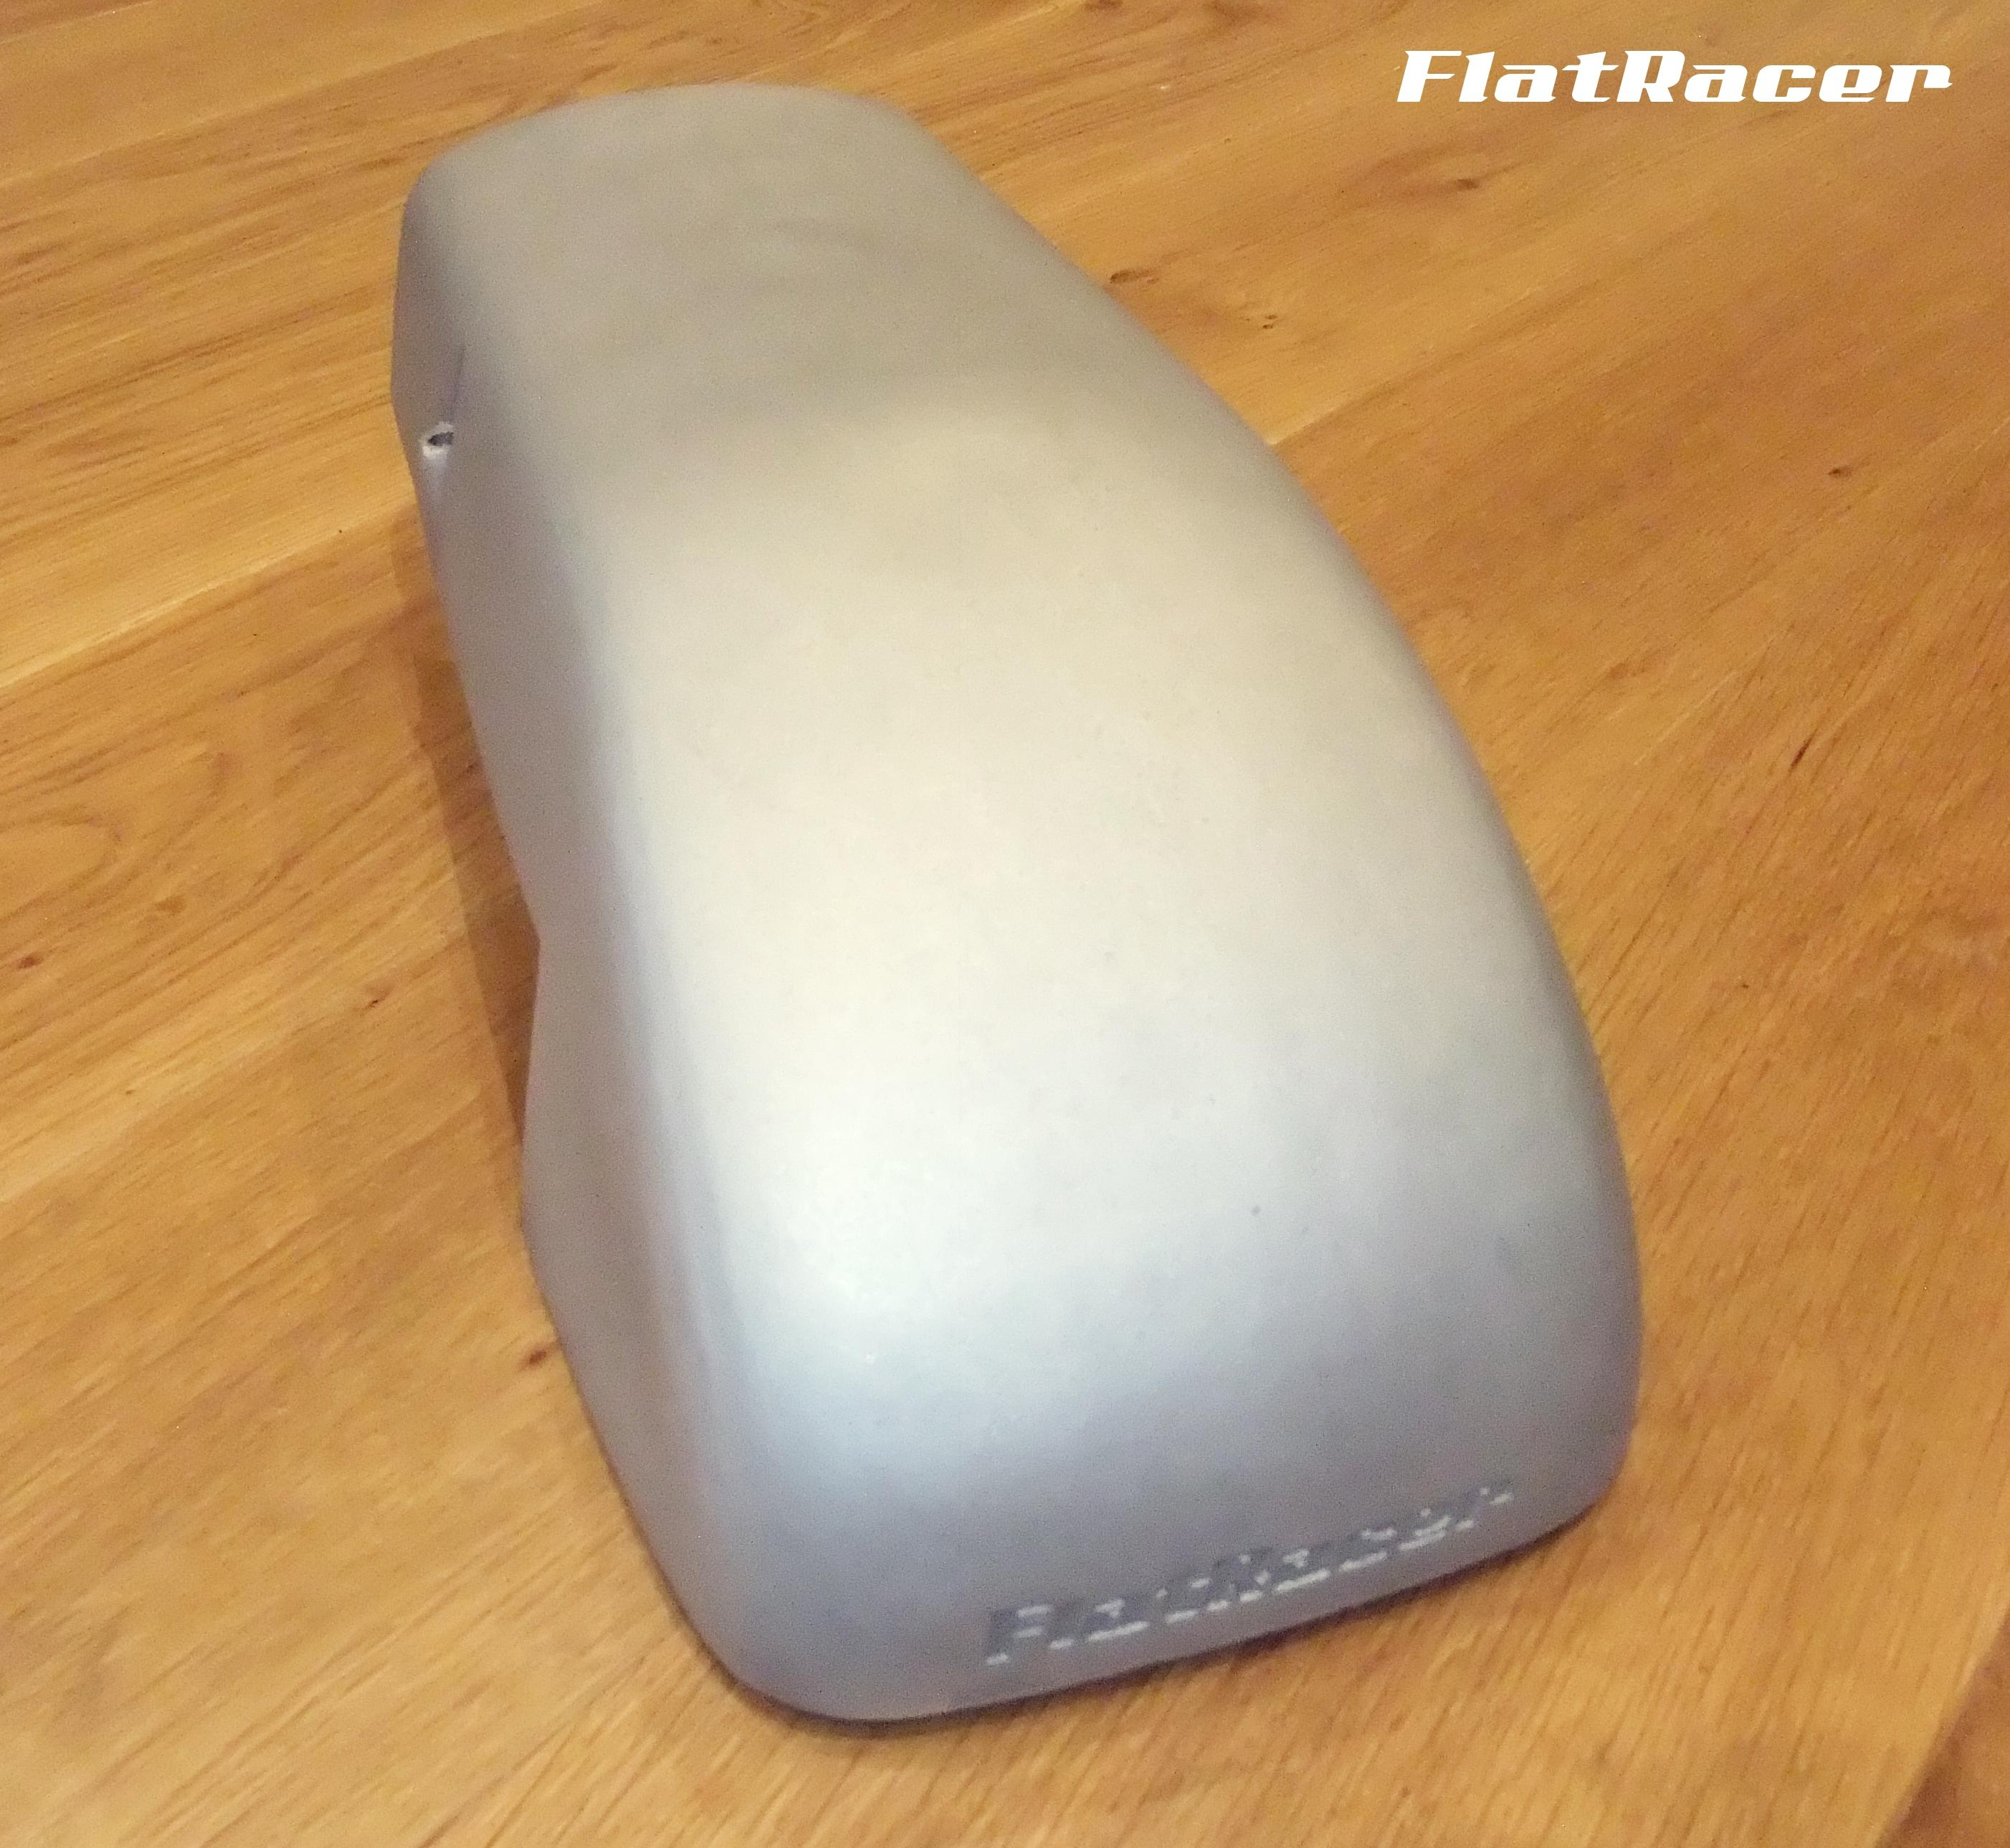 FlatRacer BMW R2v Airhead Boxer Cafe Racer cast alloy top engine cover.